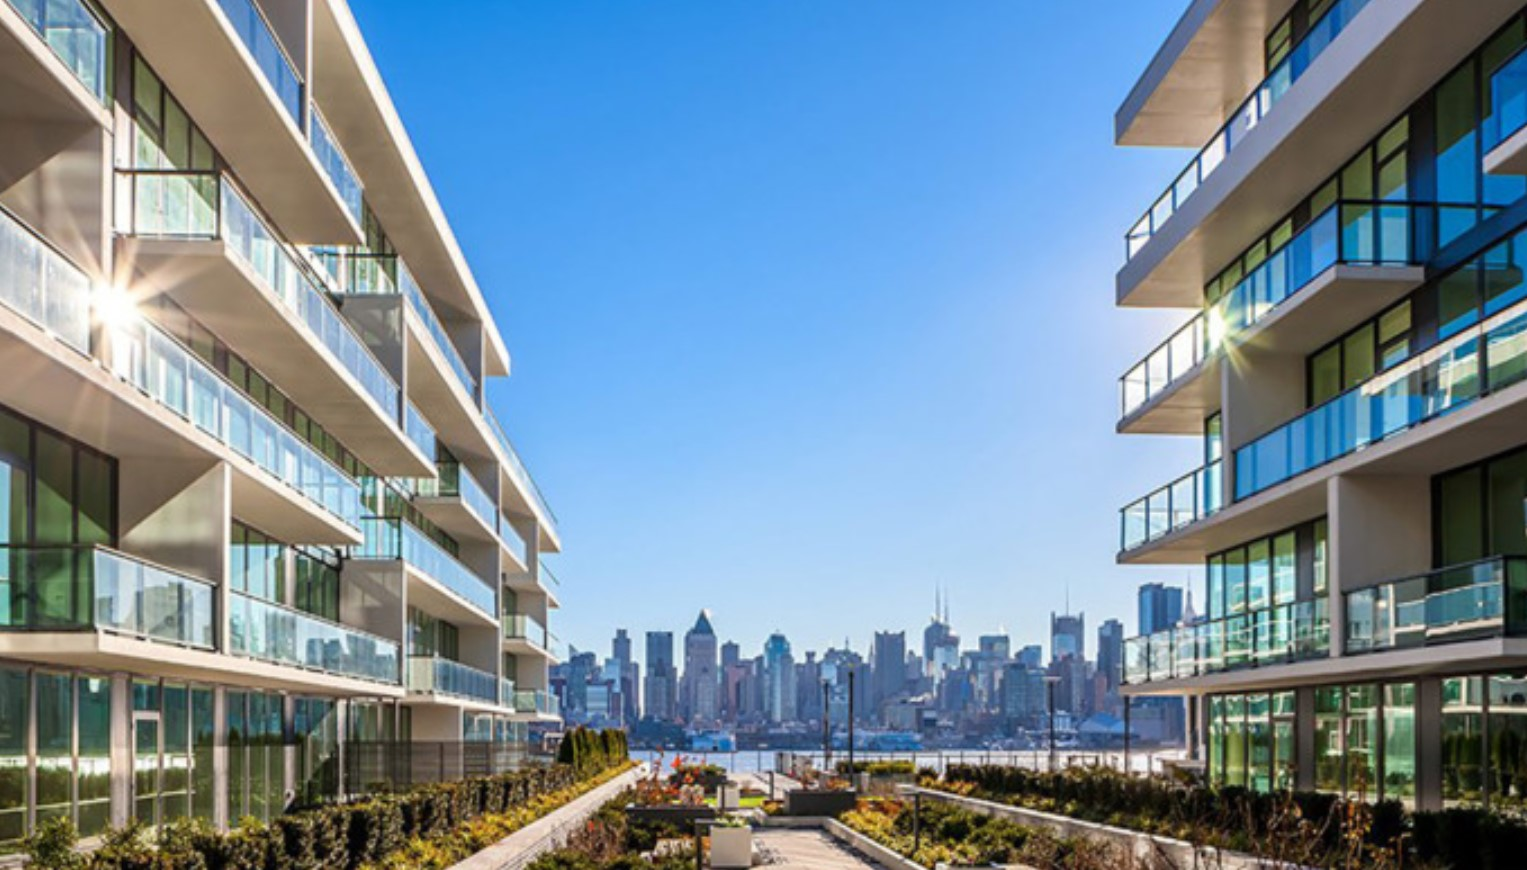 7 Mistakes To Avoid When Buying A Condo